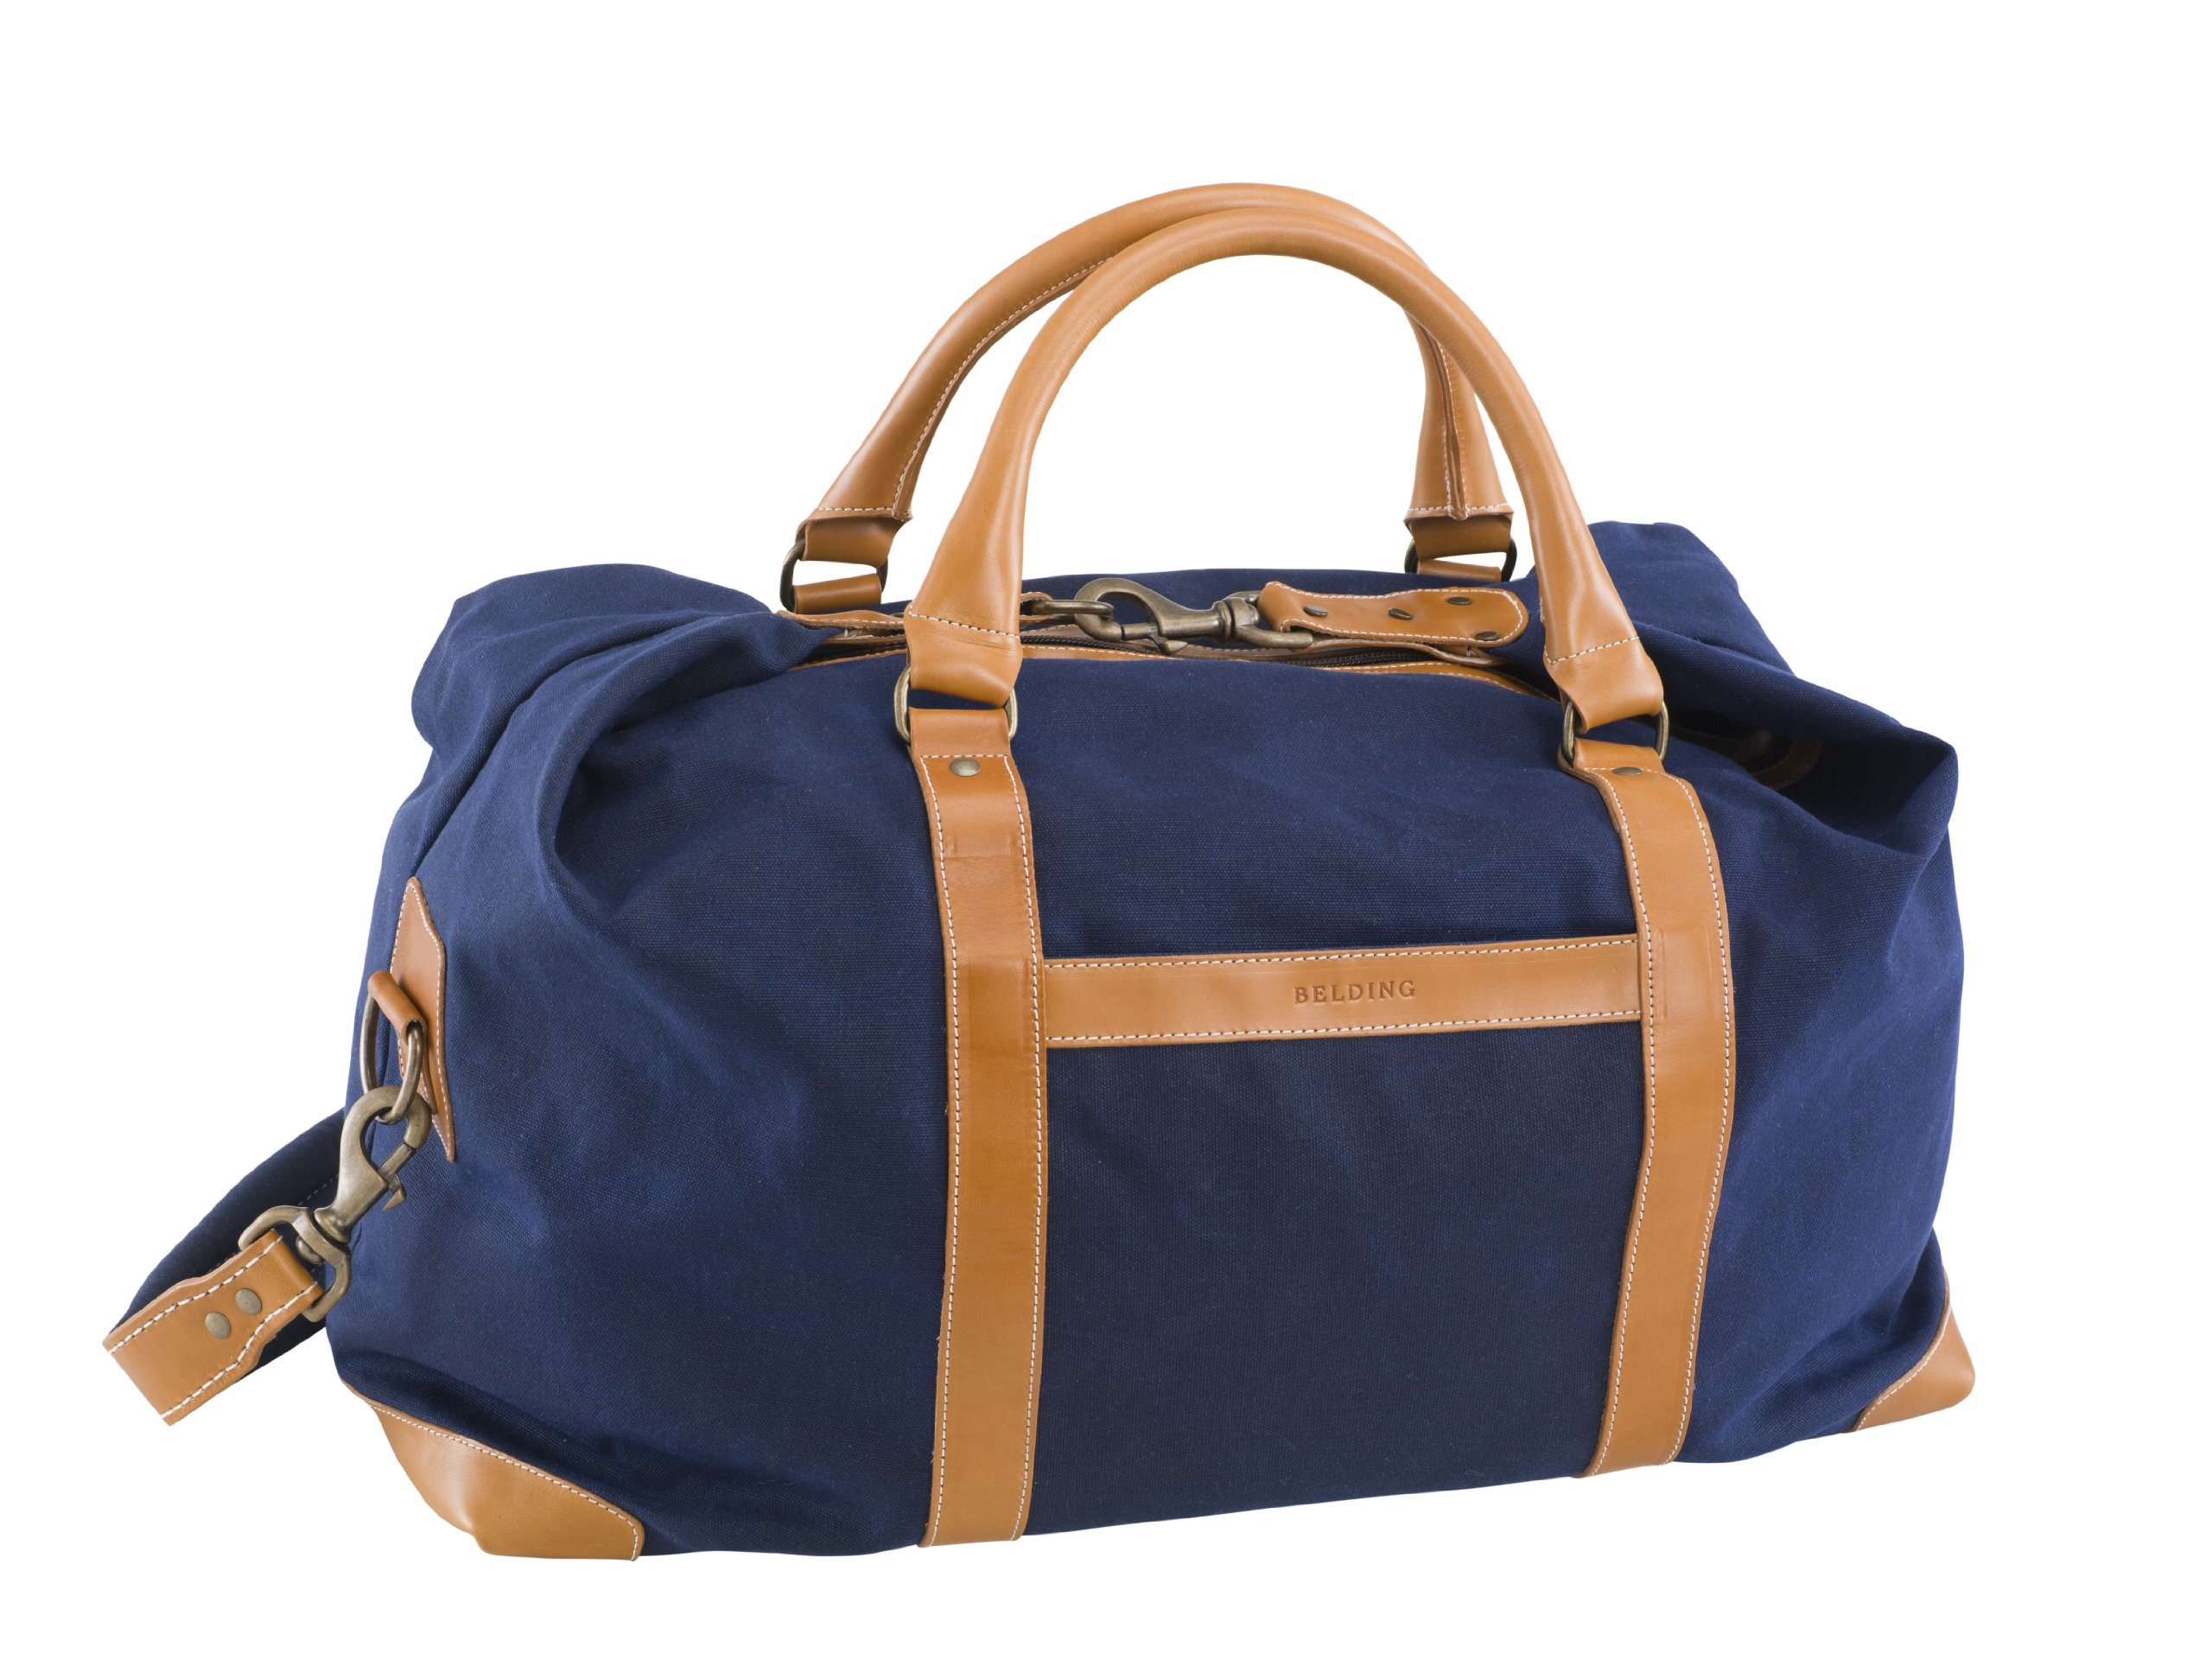 BELDING American Collection Satchel Duffle Bag, Navy